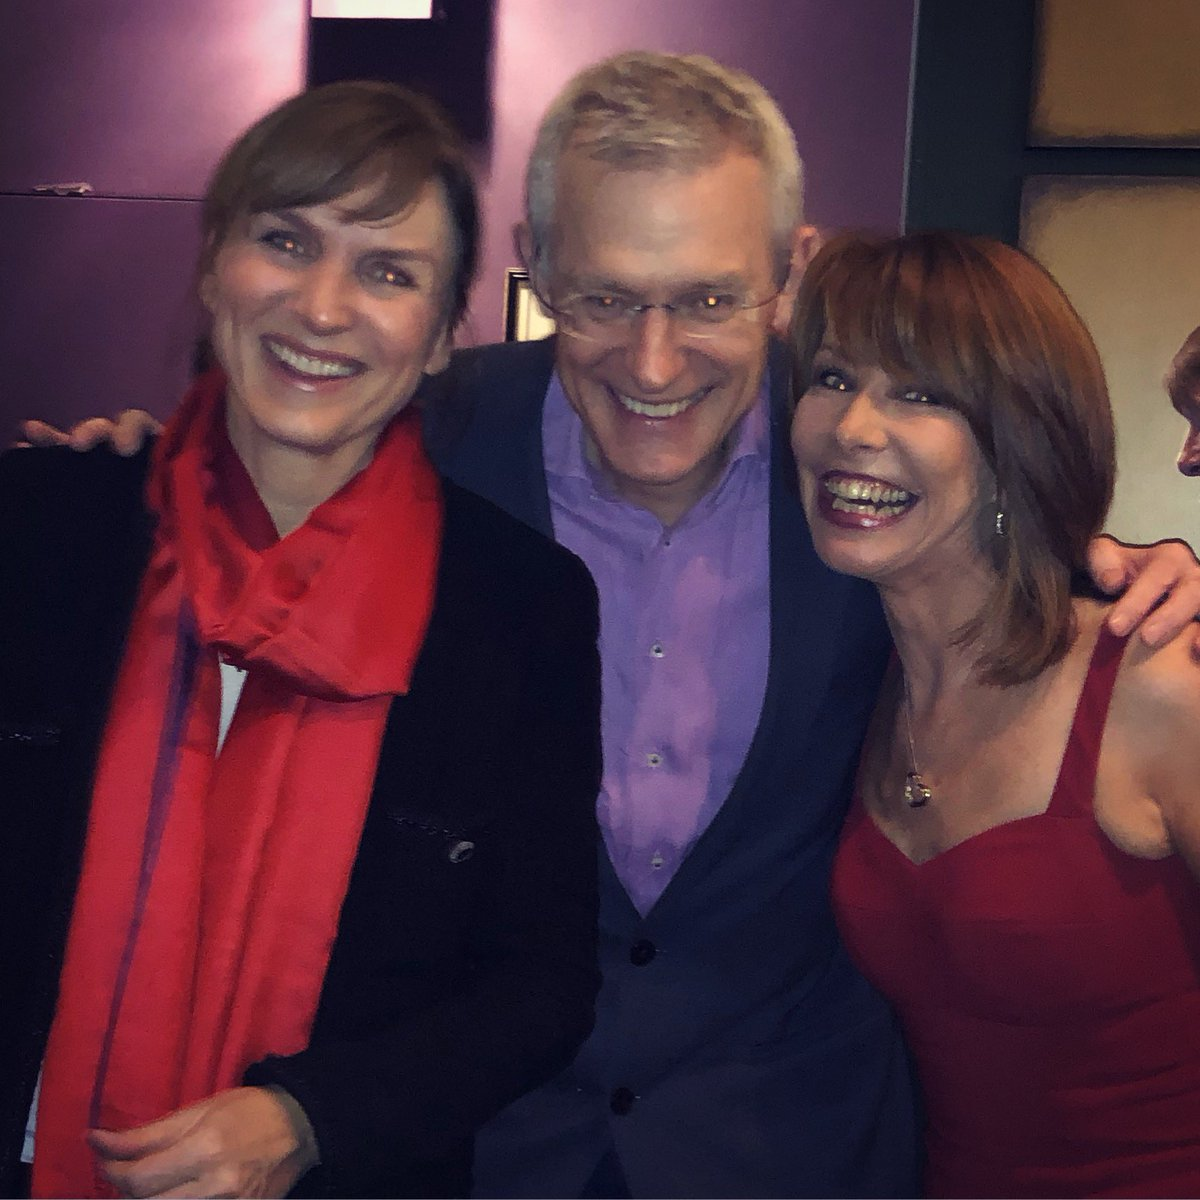 Fun night @Cirque with the magnificent woman of the moment #FionaBruce and the always fun @theJeremyVine   #RoyalAlbertHall @Sentebale